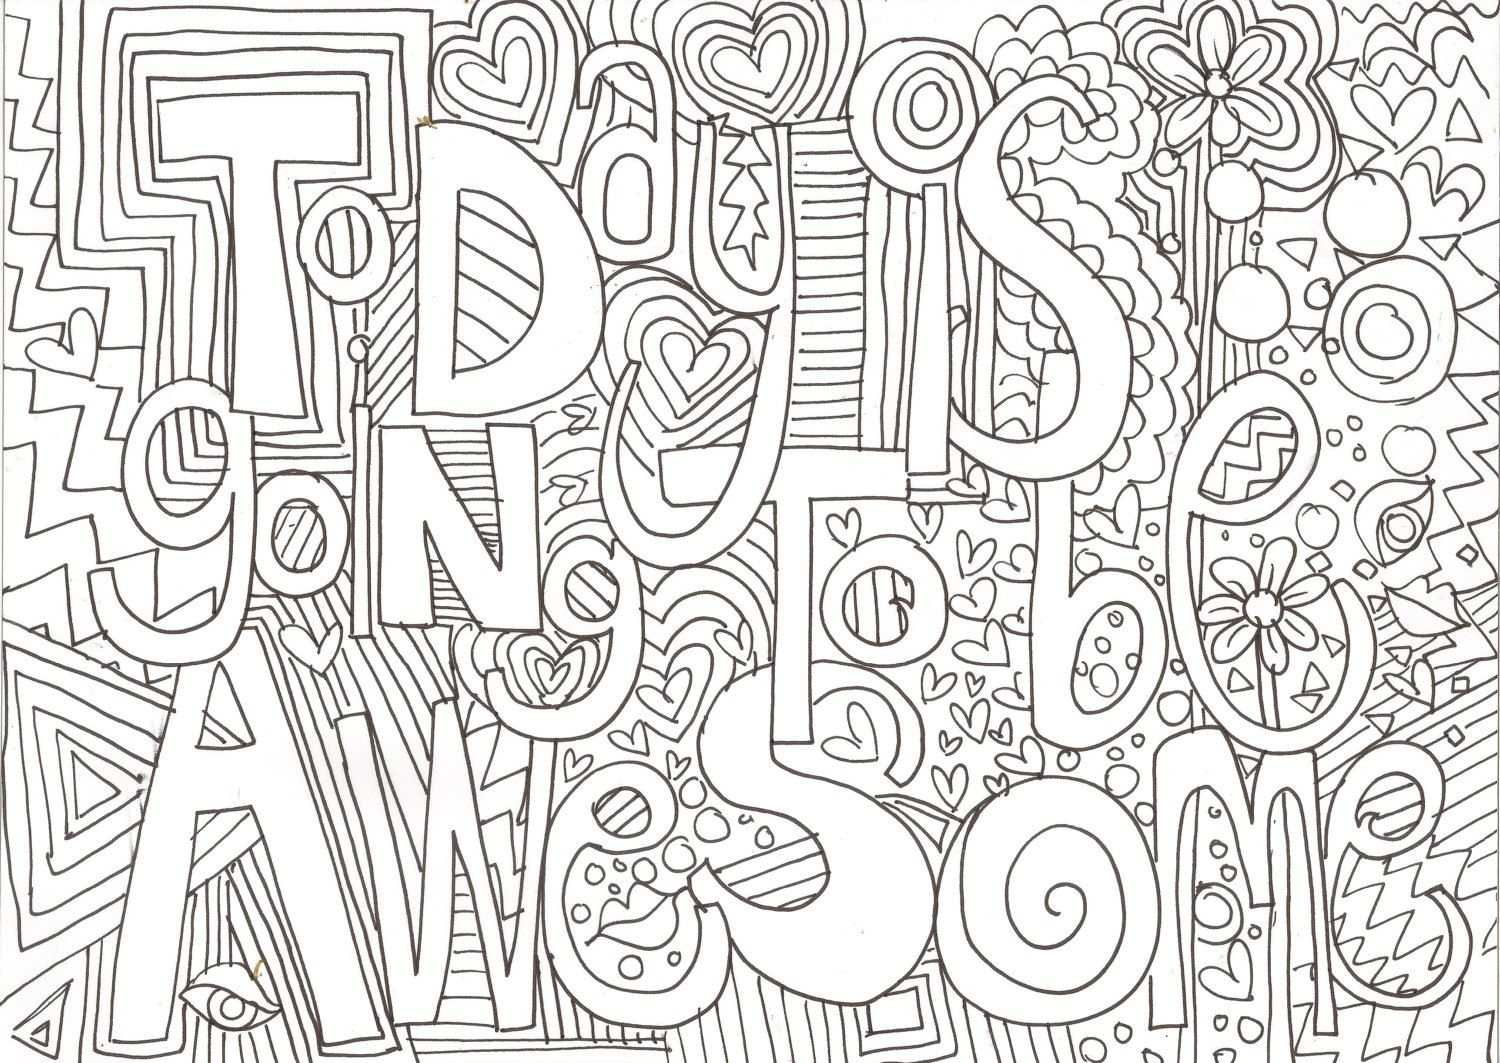 Printable Adult Colouring Page - Love Zendoodle | Love, Colouring ...